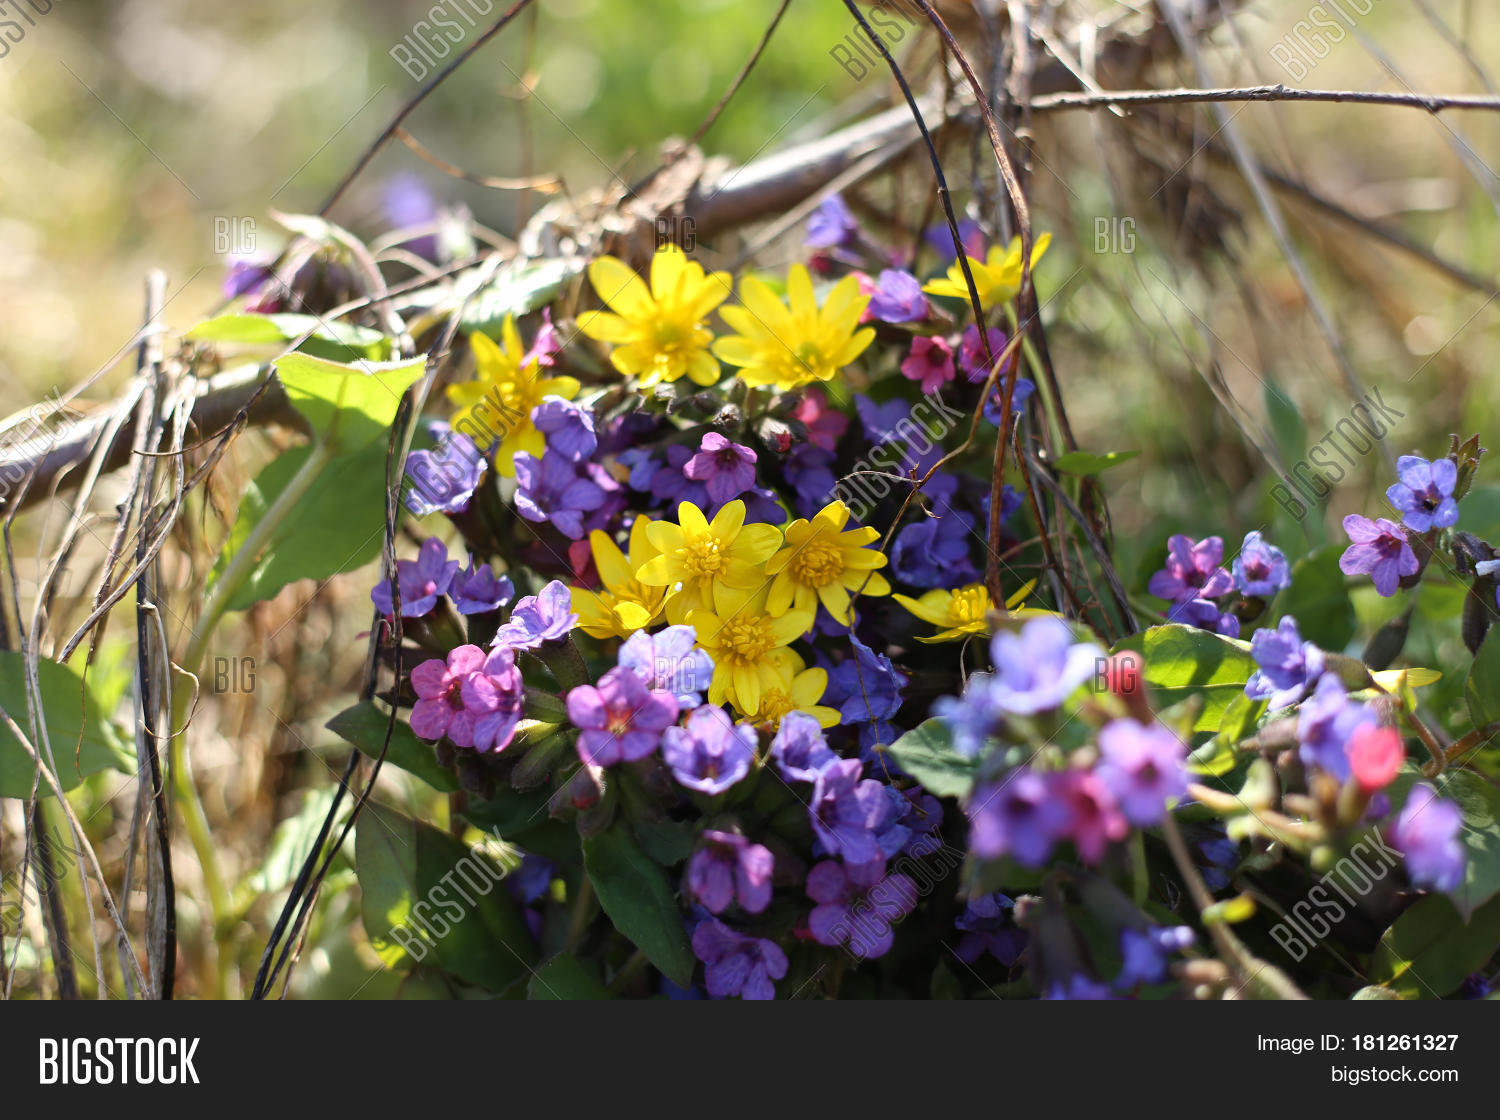 Wild Forest Flowers Image Photo Free Trial Bigstock